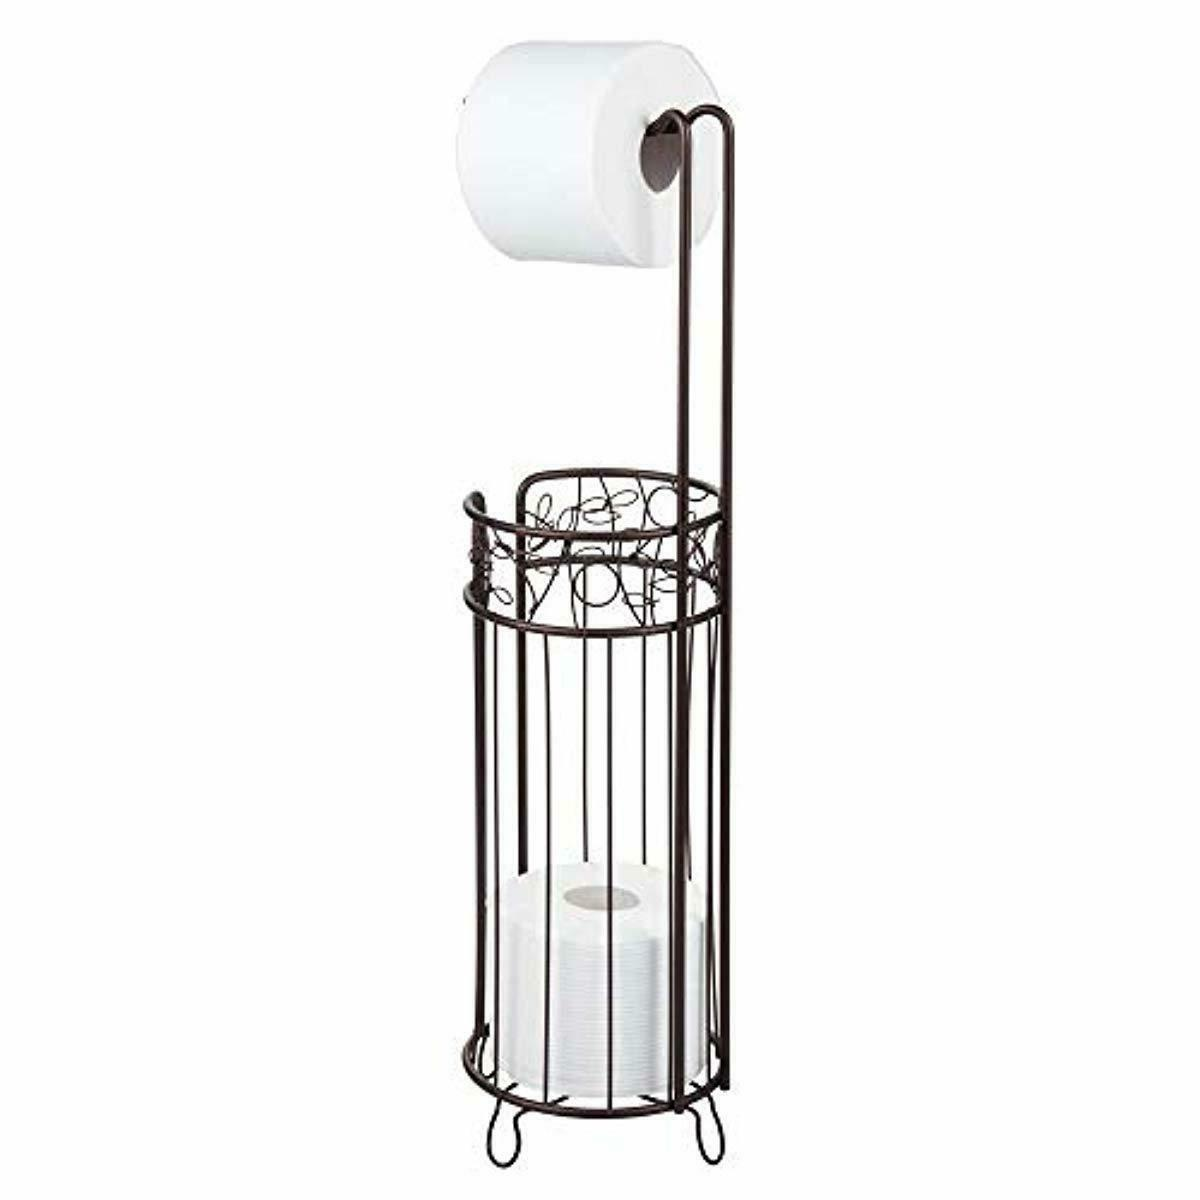 Free Standing Toilet Paper Holder–Dispenser and Spare Roll